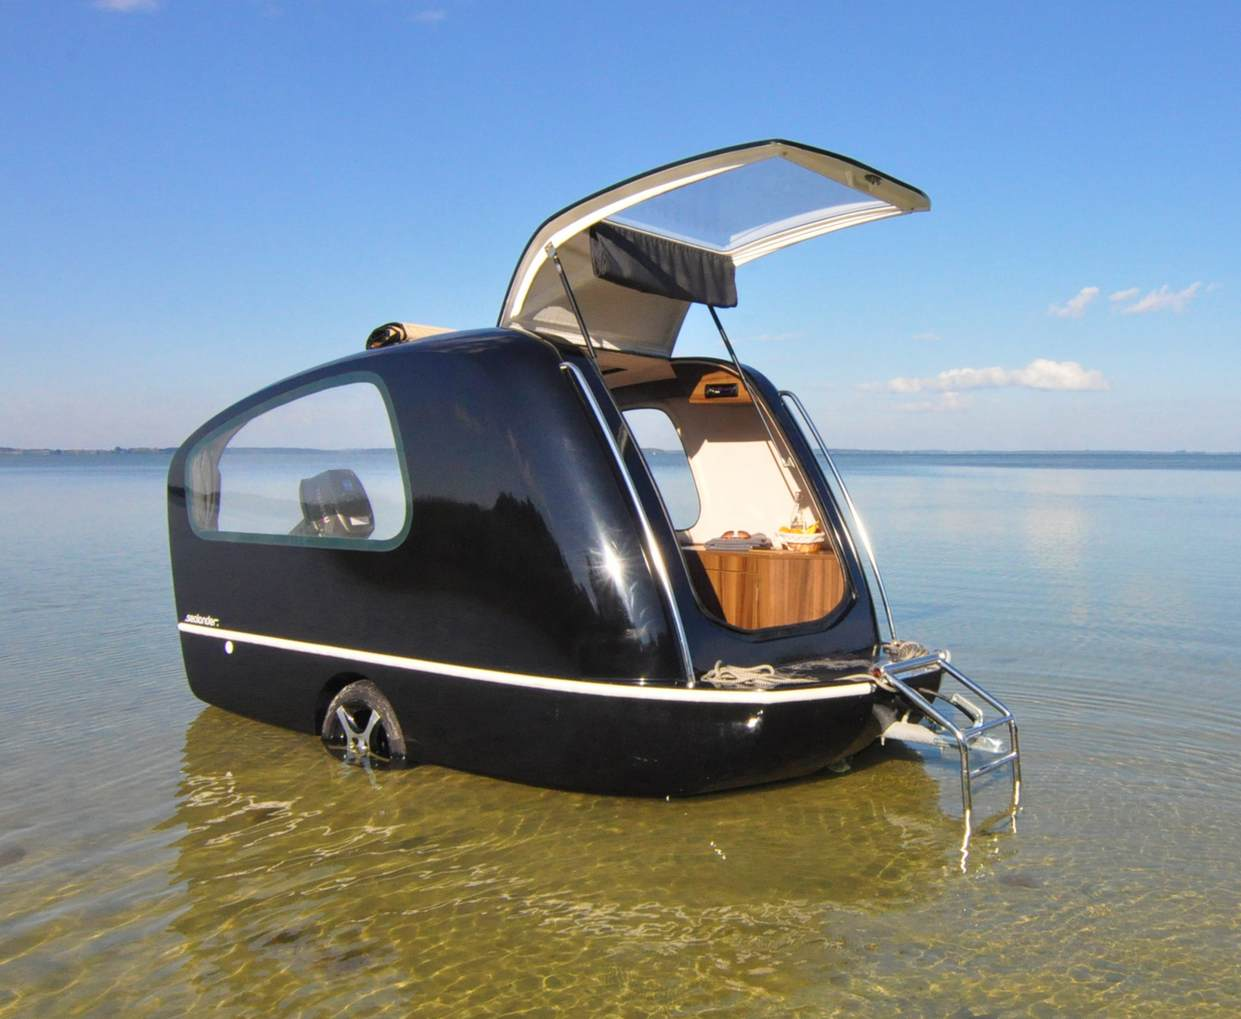 Sealander towed camper: it's a boat too